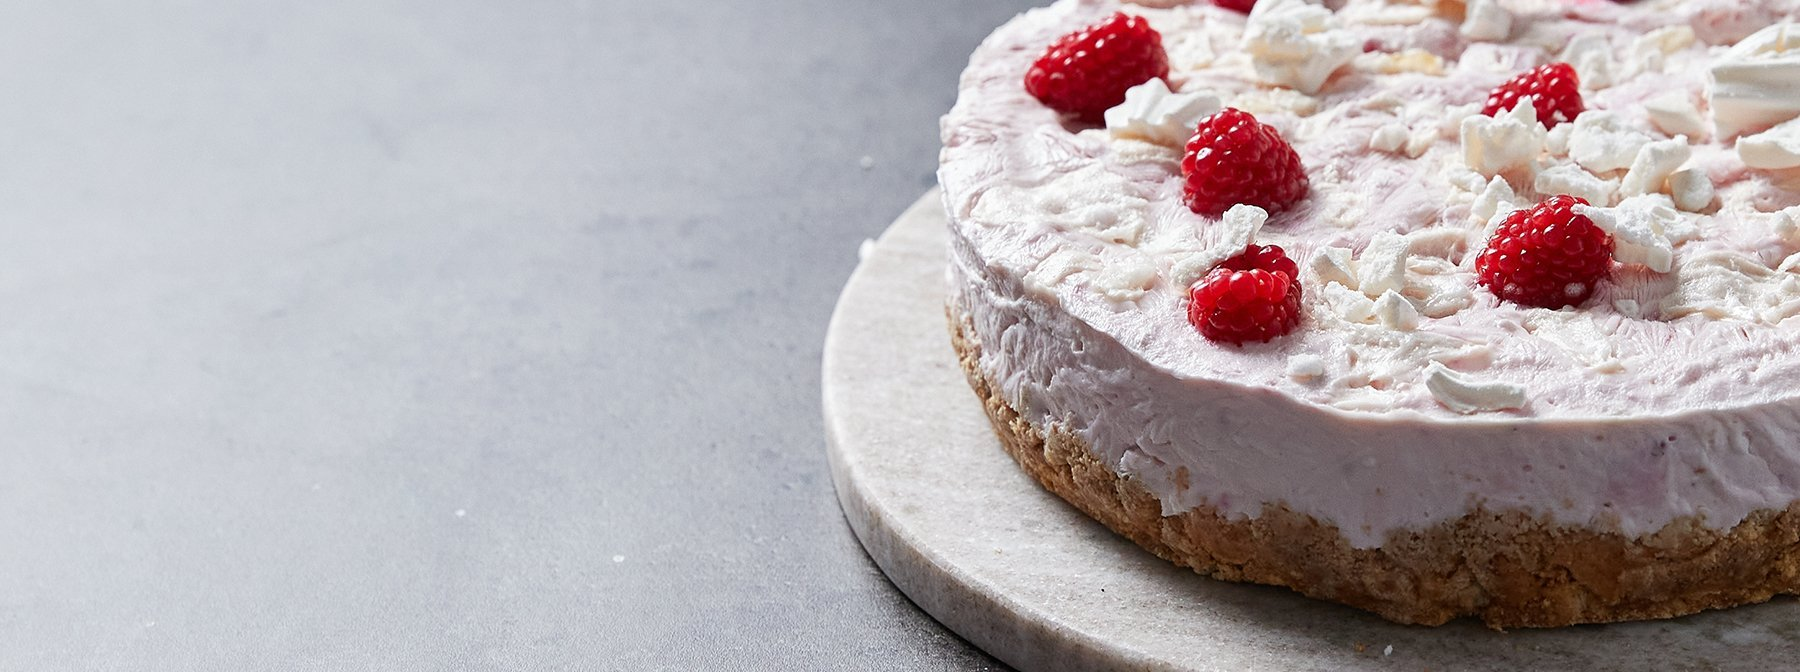 Eton Mess Gefrorener Protein Käsekuchen | World's Kitchen